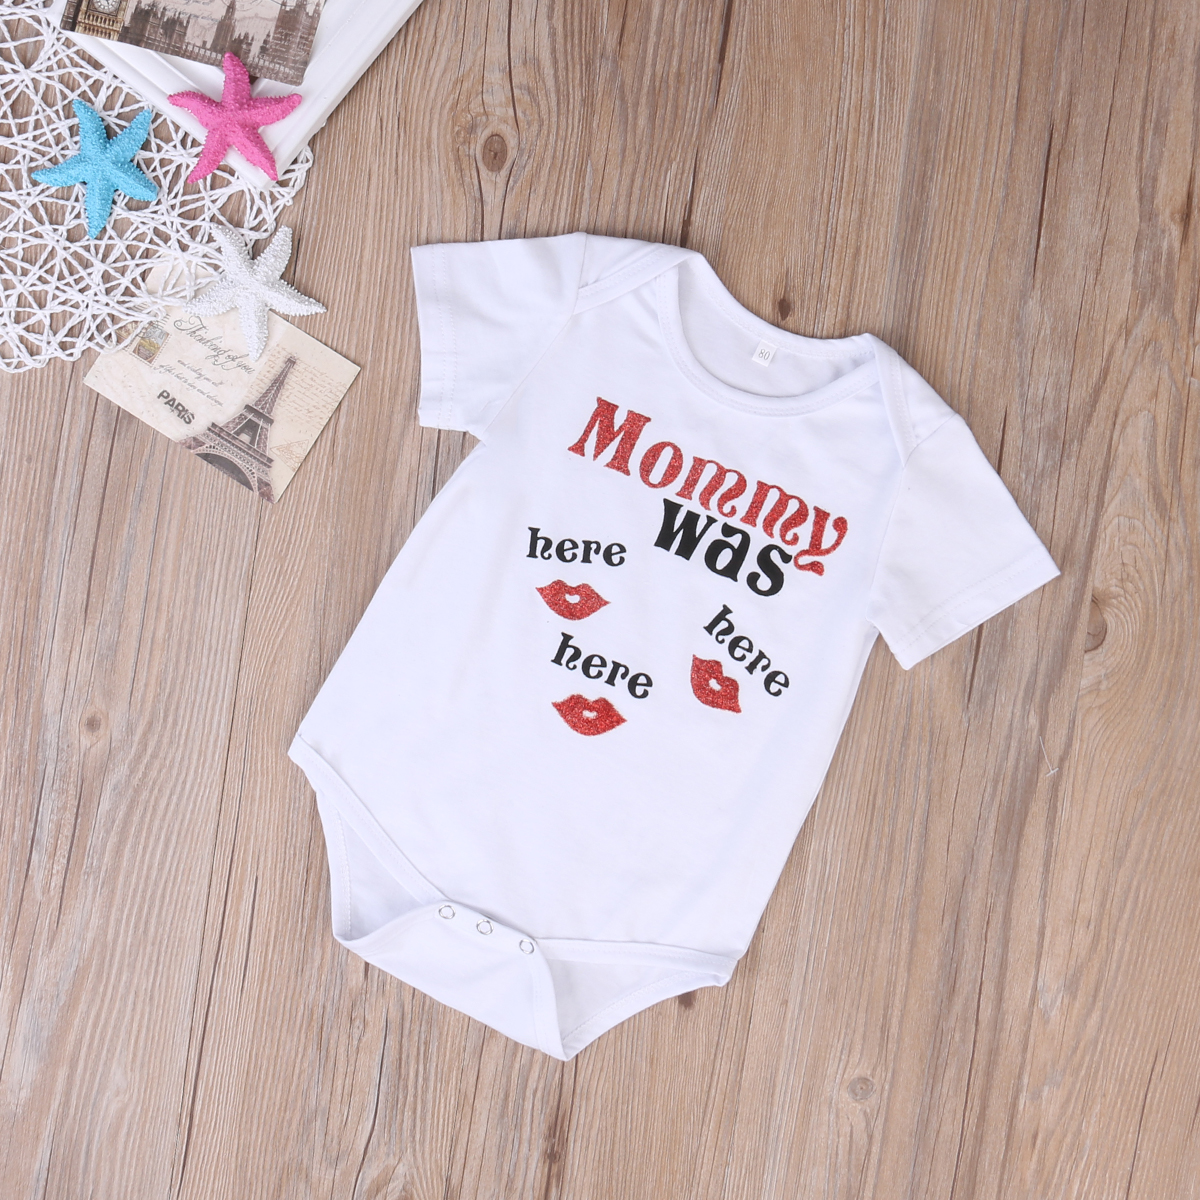 Newborn Kids Baby Mommy Was Here Bodysuit One-piece Sunsuit Clothes 0-24M